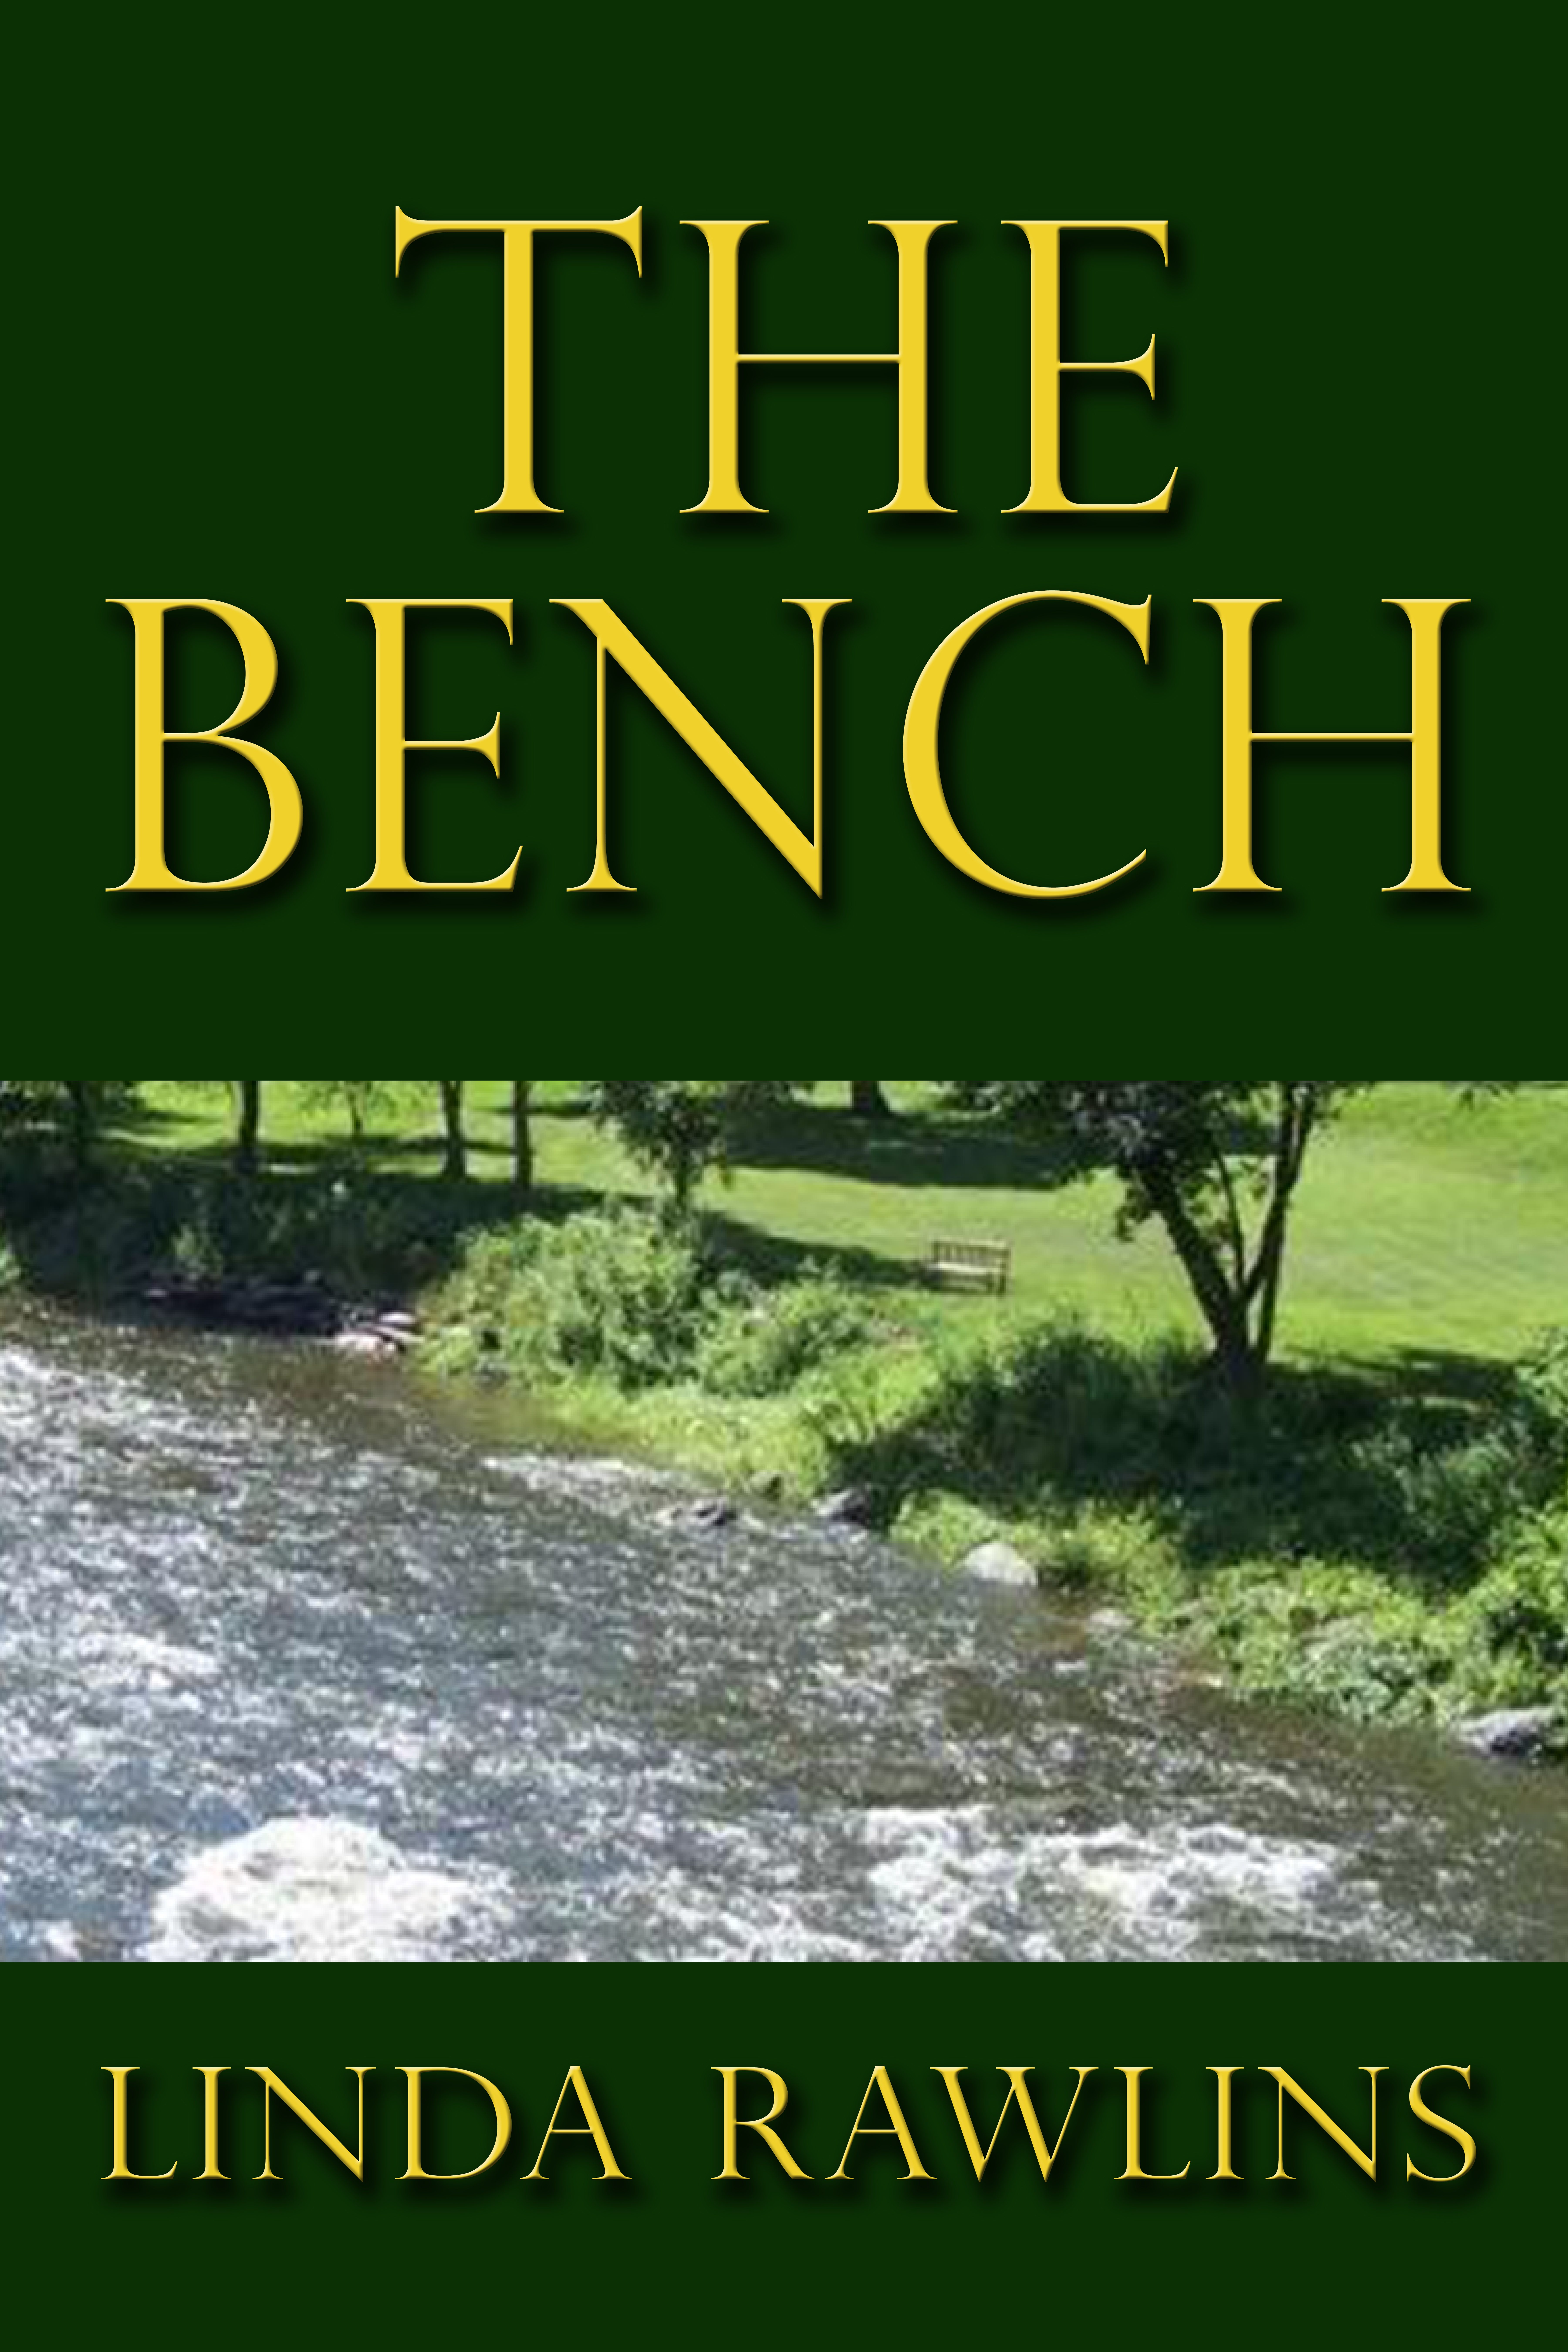 BENCHCOVER